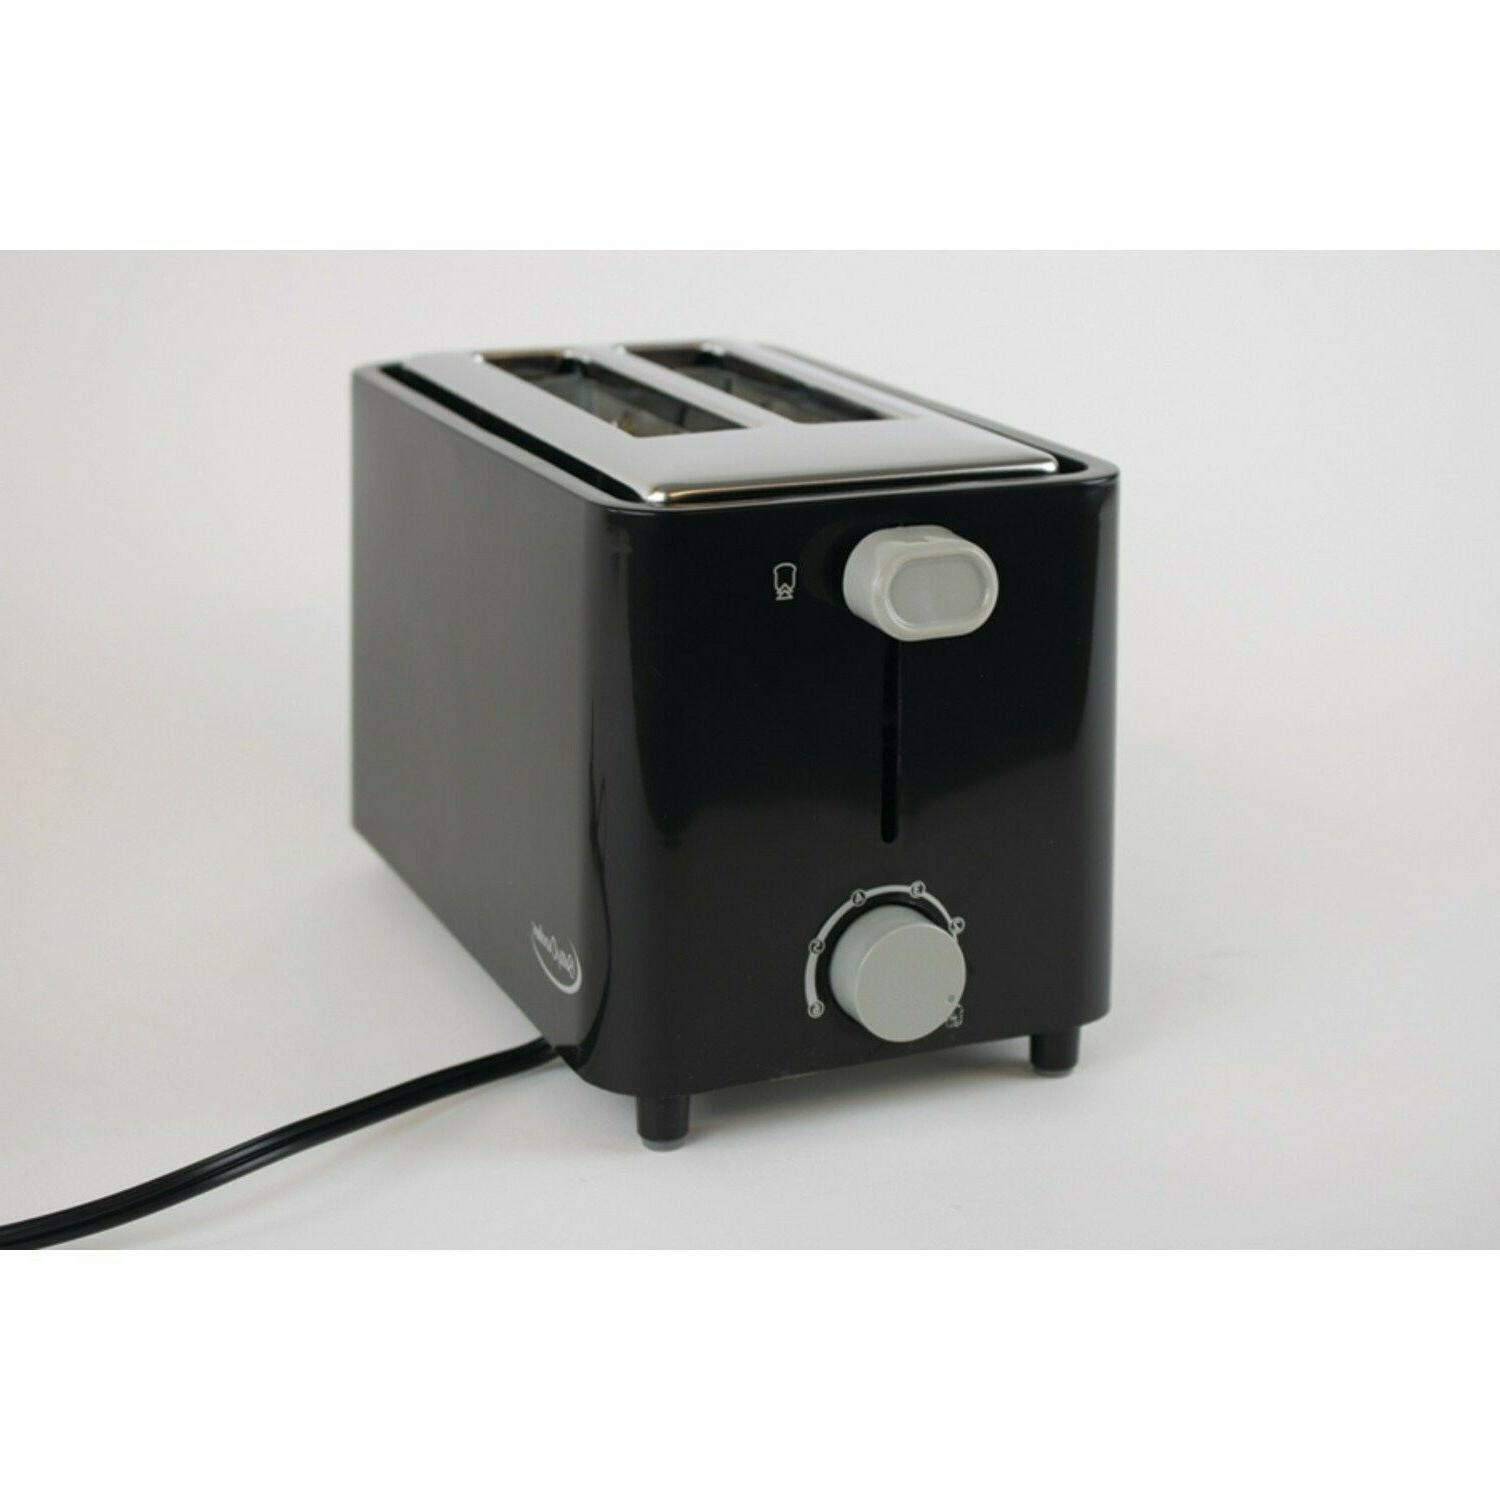 2 Toaster Steel Compact Electric